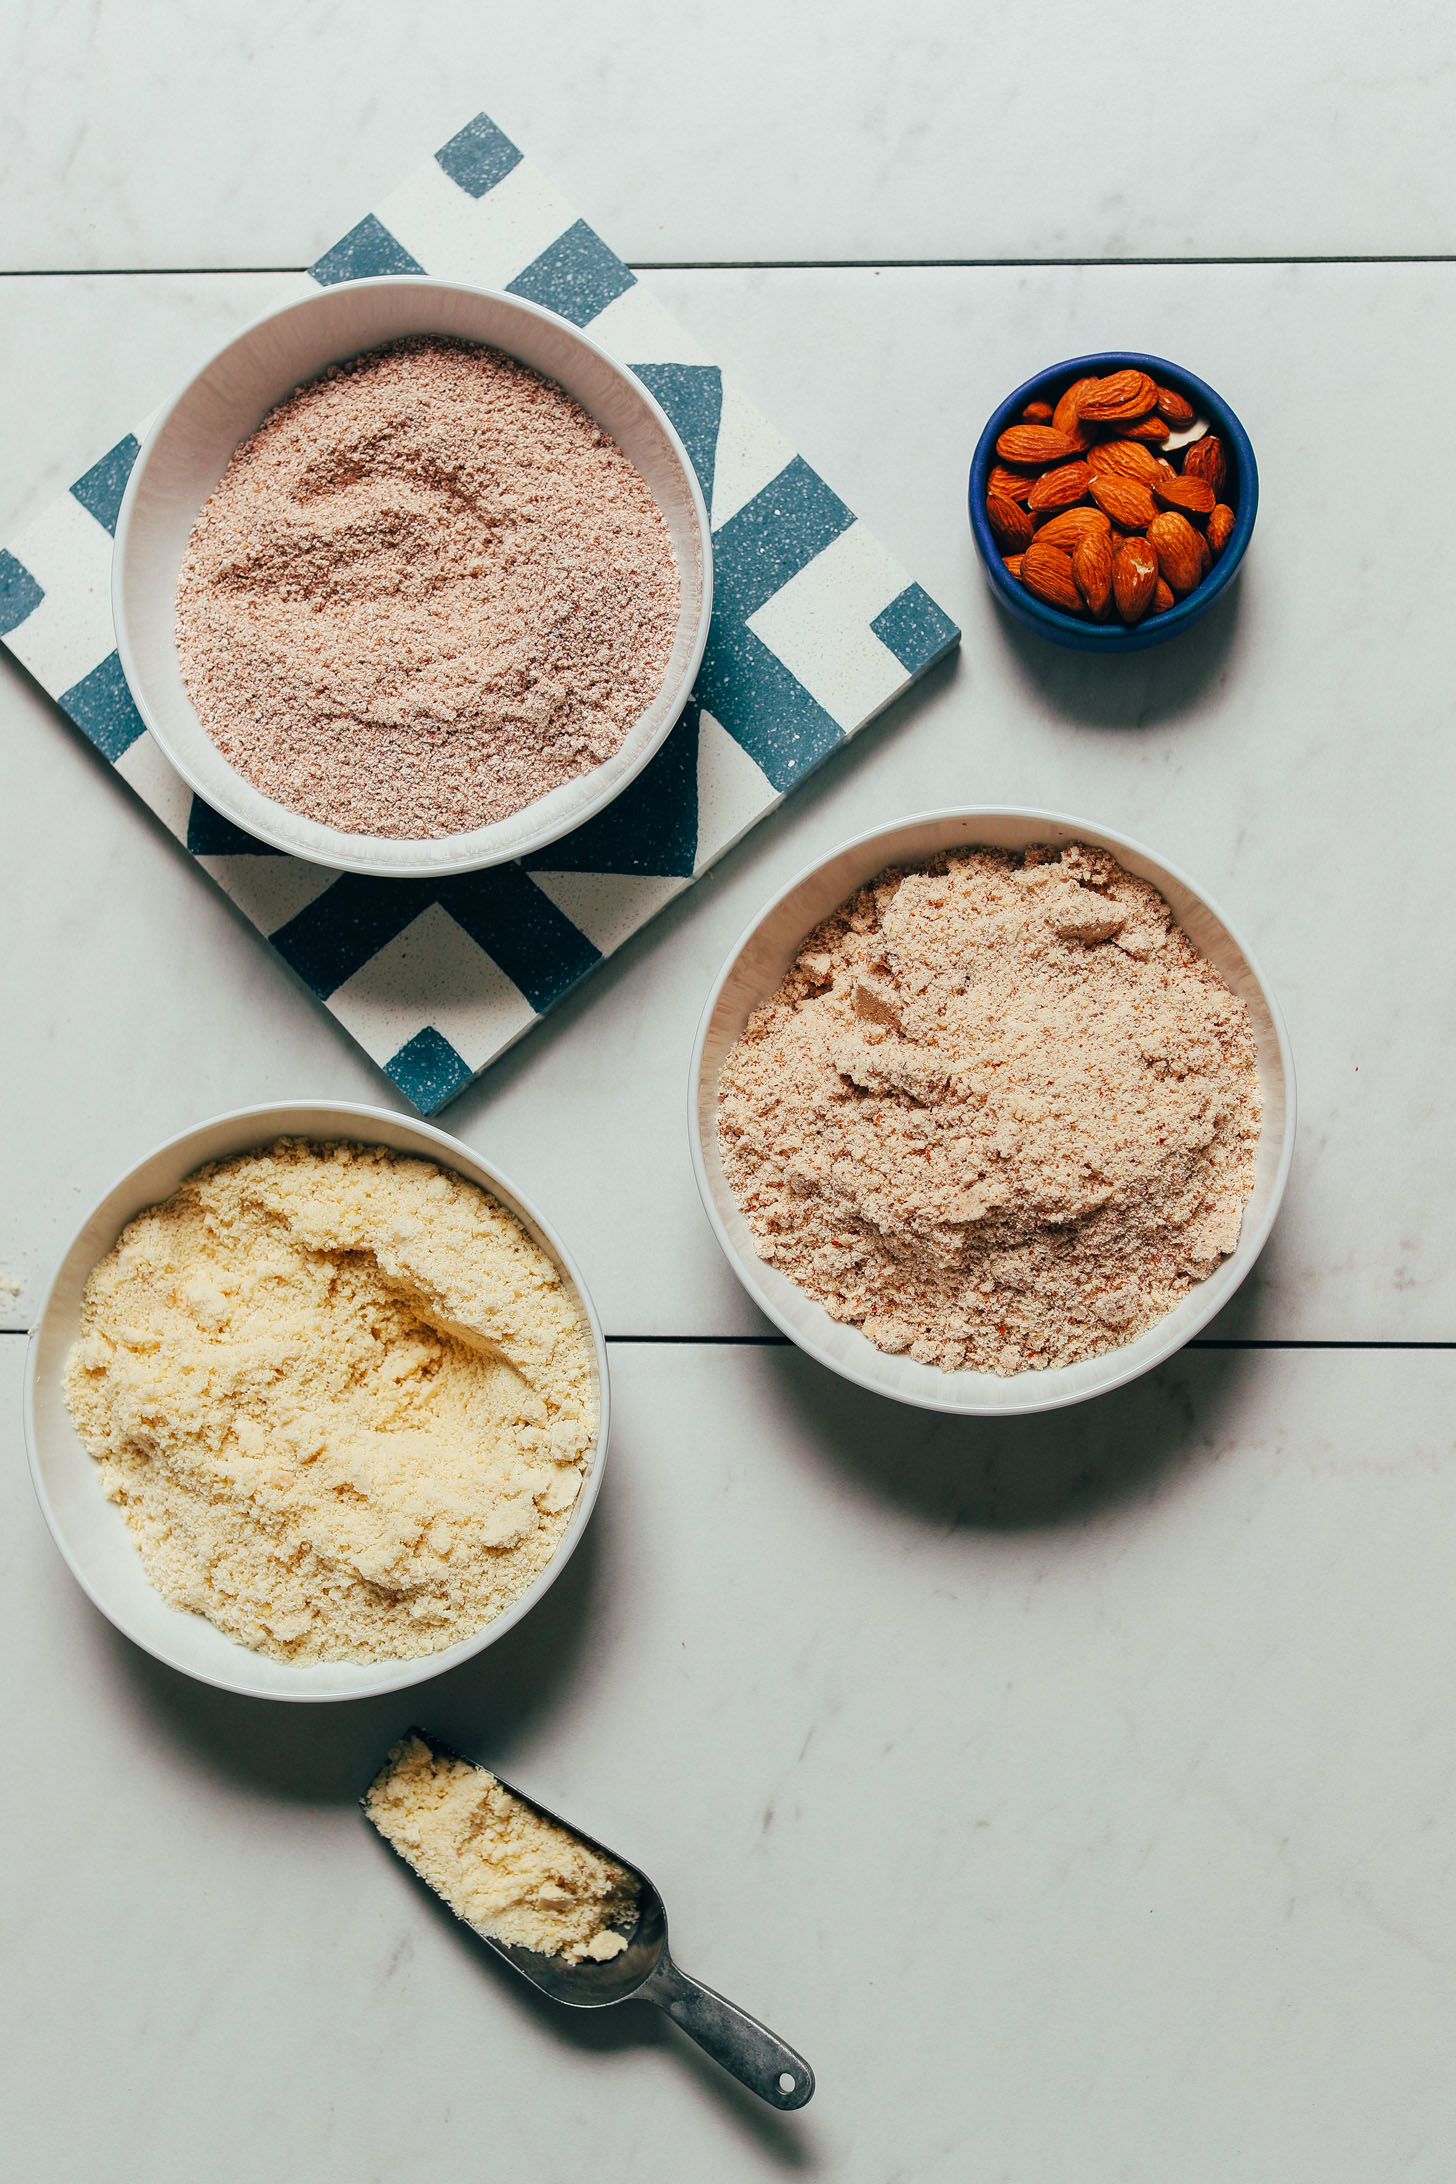 Bowls of almond flour and two different types of almond meal with one being made from leftover almond pulp